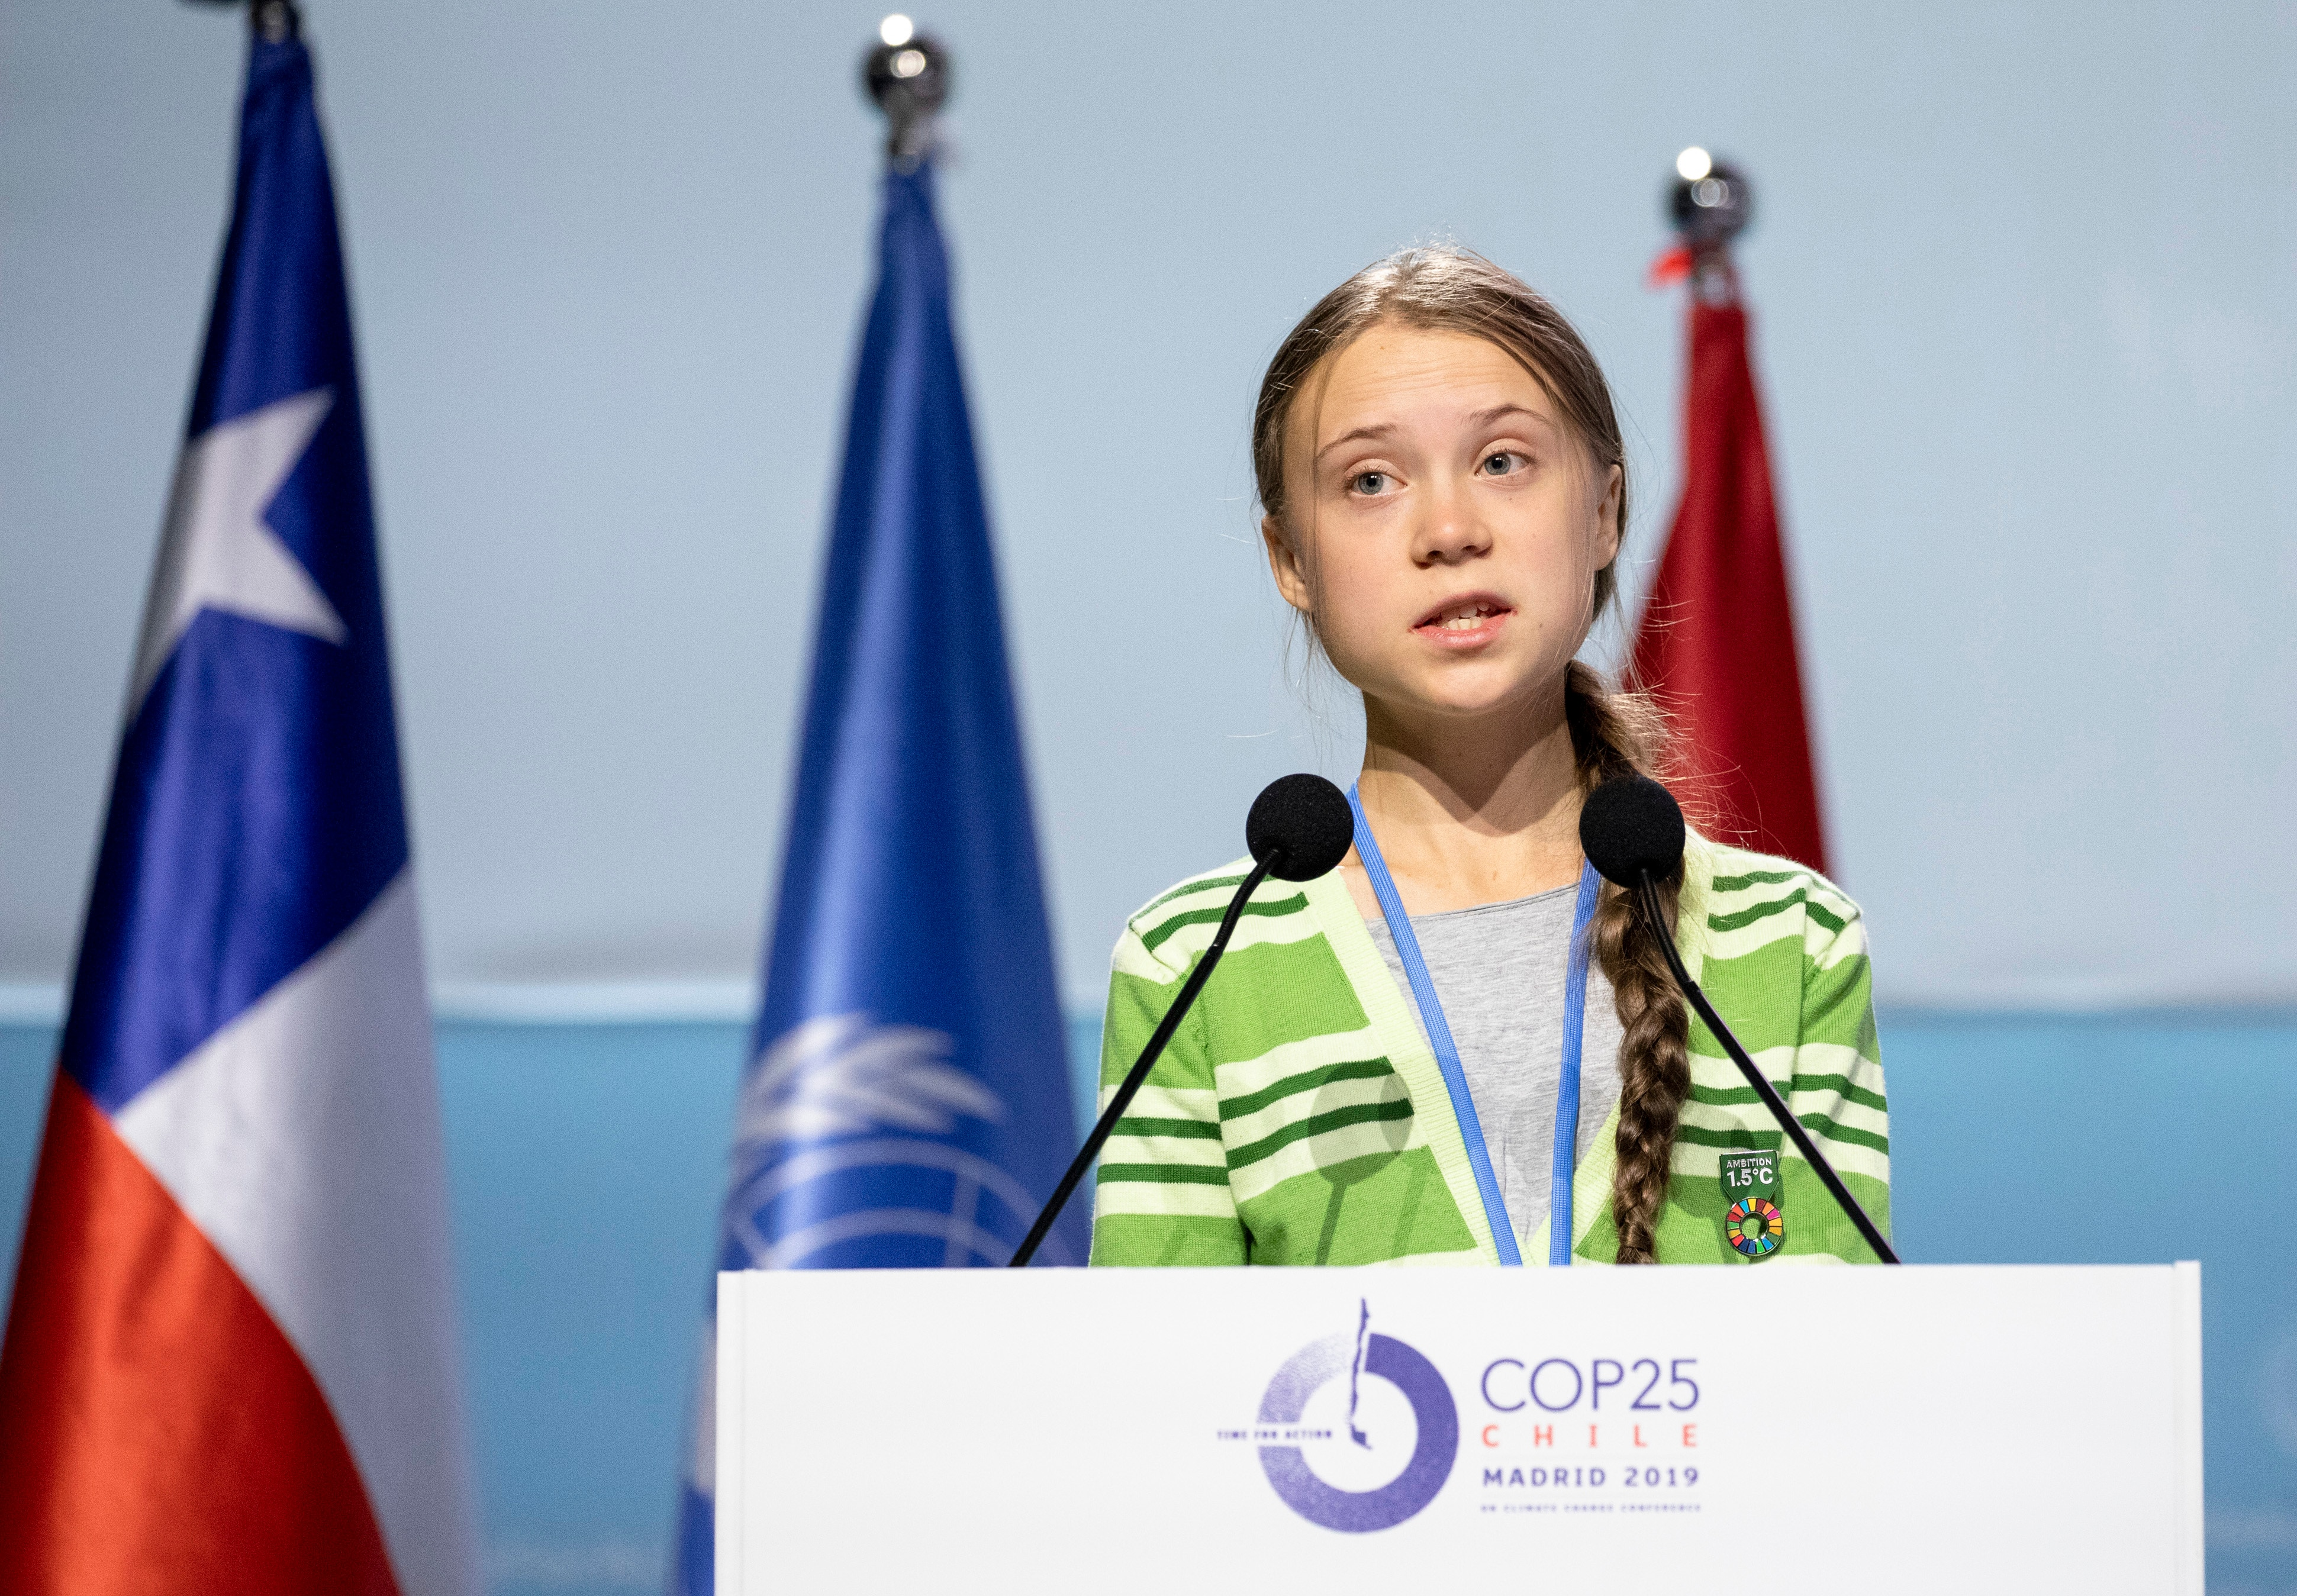 Swedish environment activist Greta Thunberg delivers a speech at the plenary session during the COP25 Climate Conference.